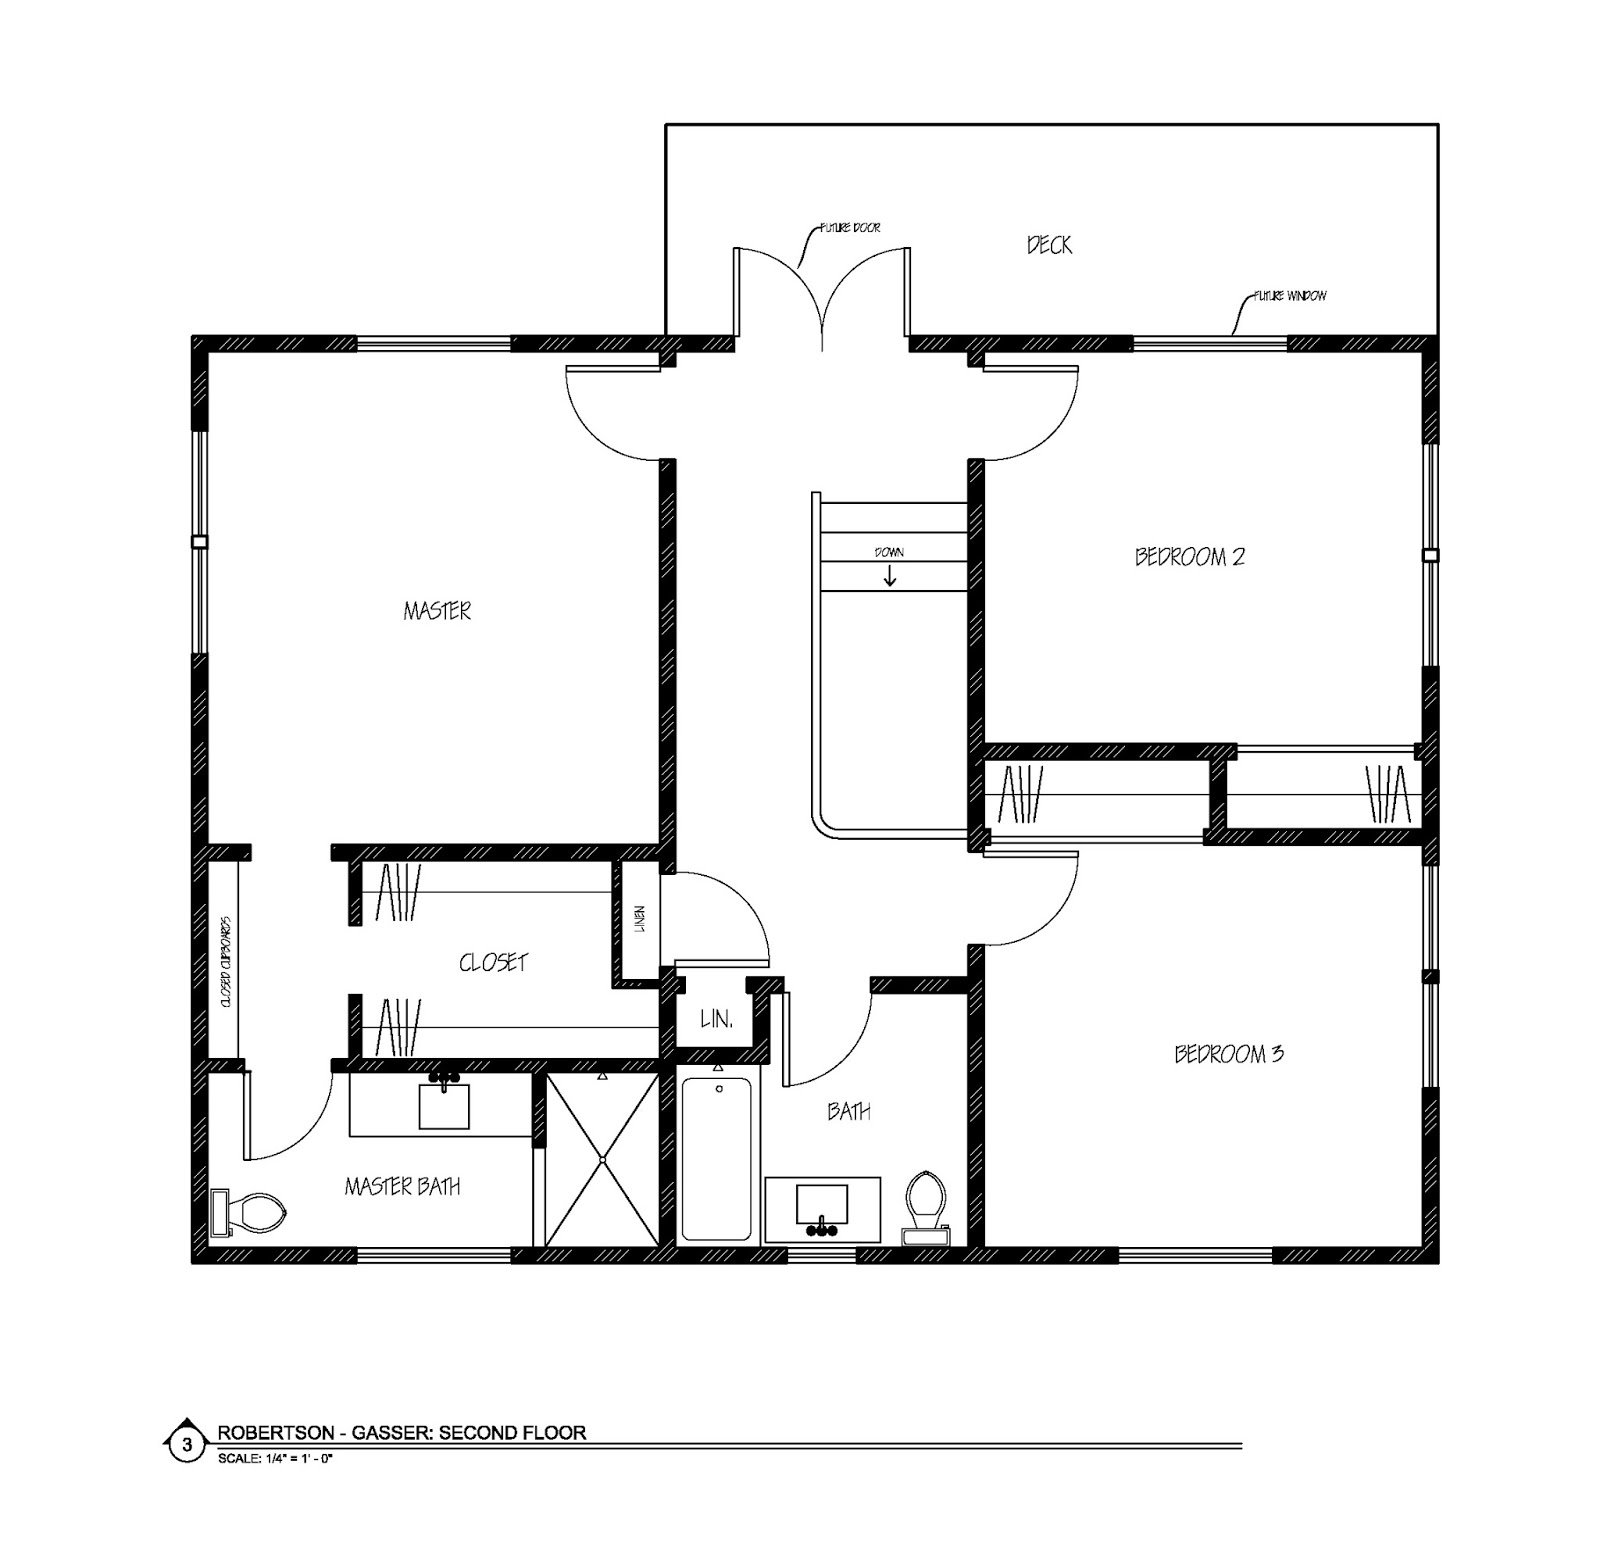 Trove Interiors Rough In Plumbing Diagram Under Sink Rwitherspoon Looking Back On The Second Floor There Was No Master Bathroom Or Shower And Closet Space Awkward Small Also Arrangement Left 4th